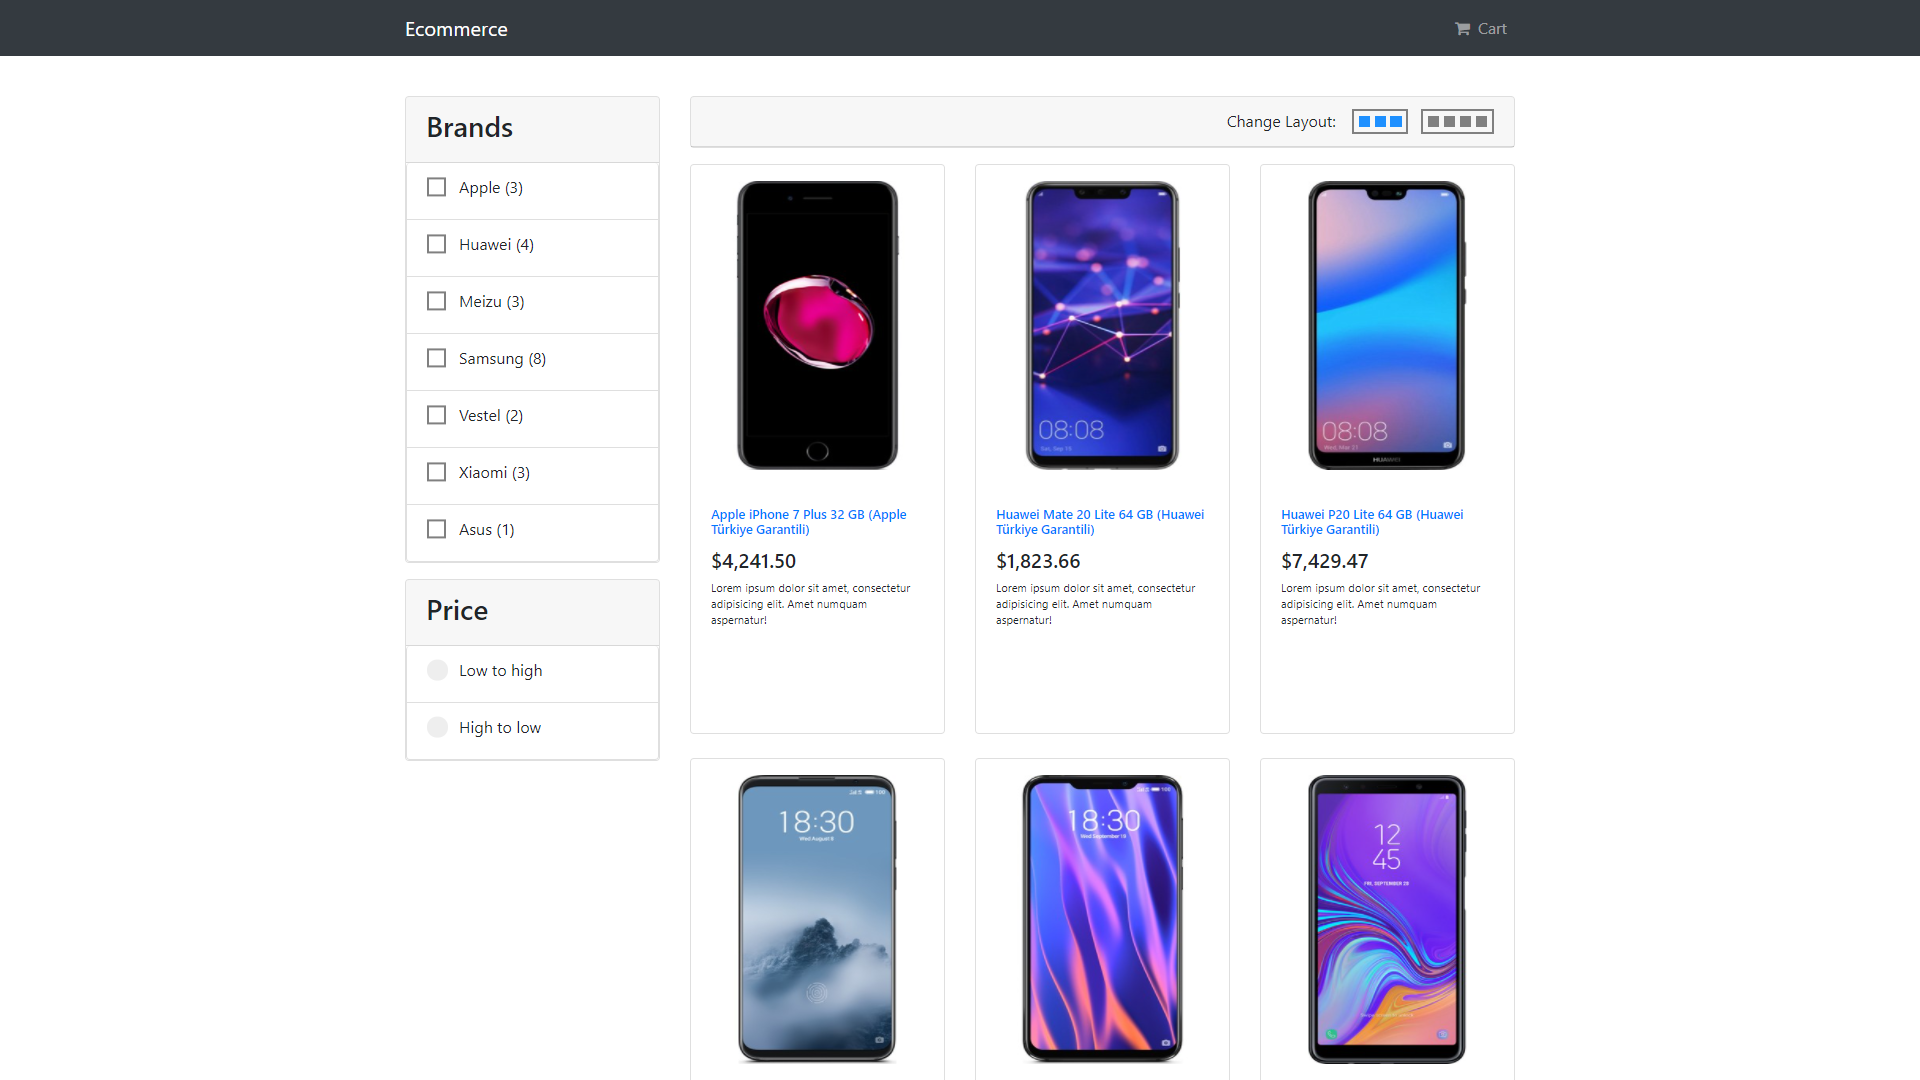 ecommerce app React Project Ideas For Beginners